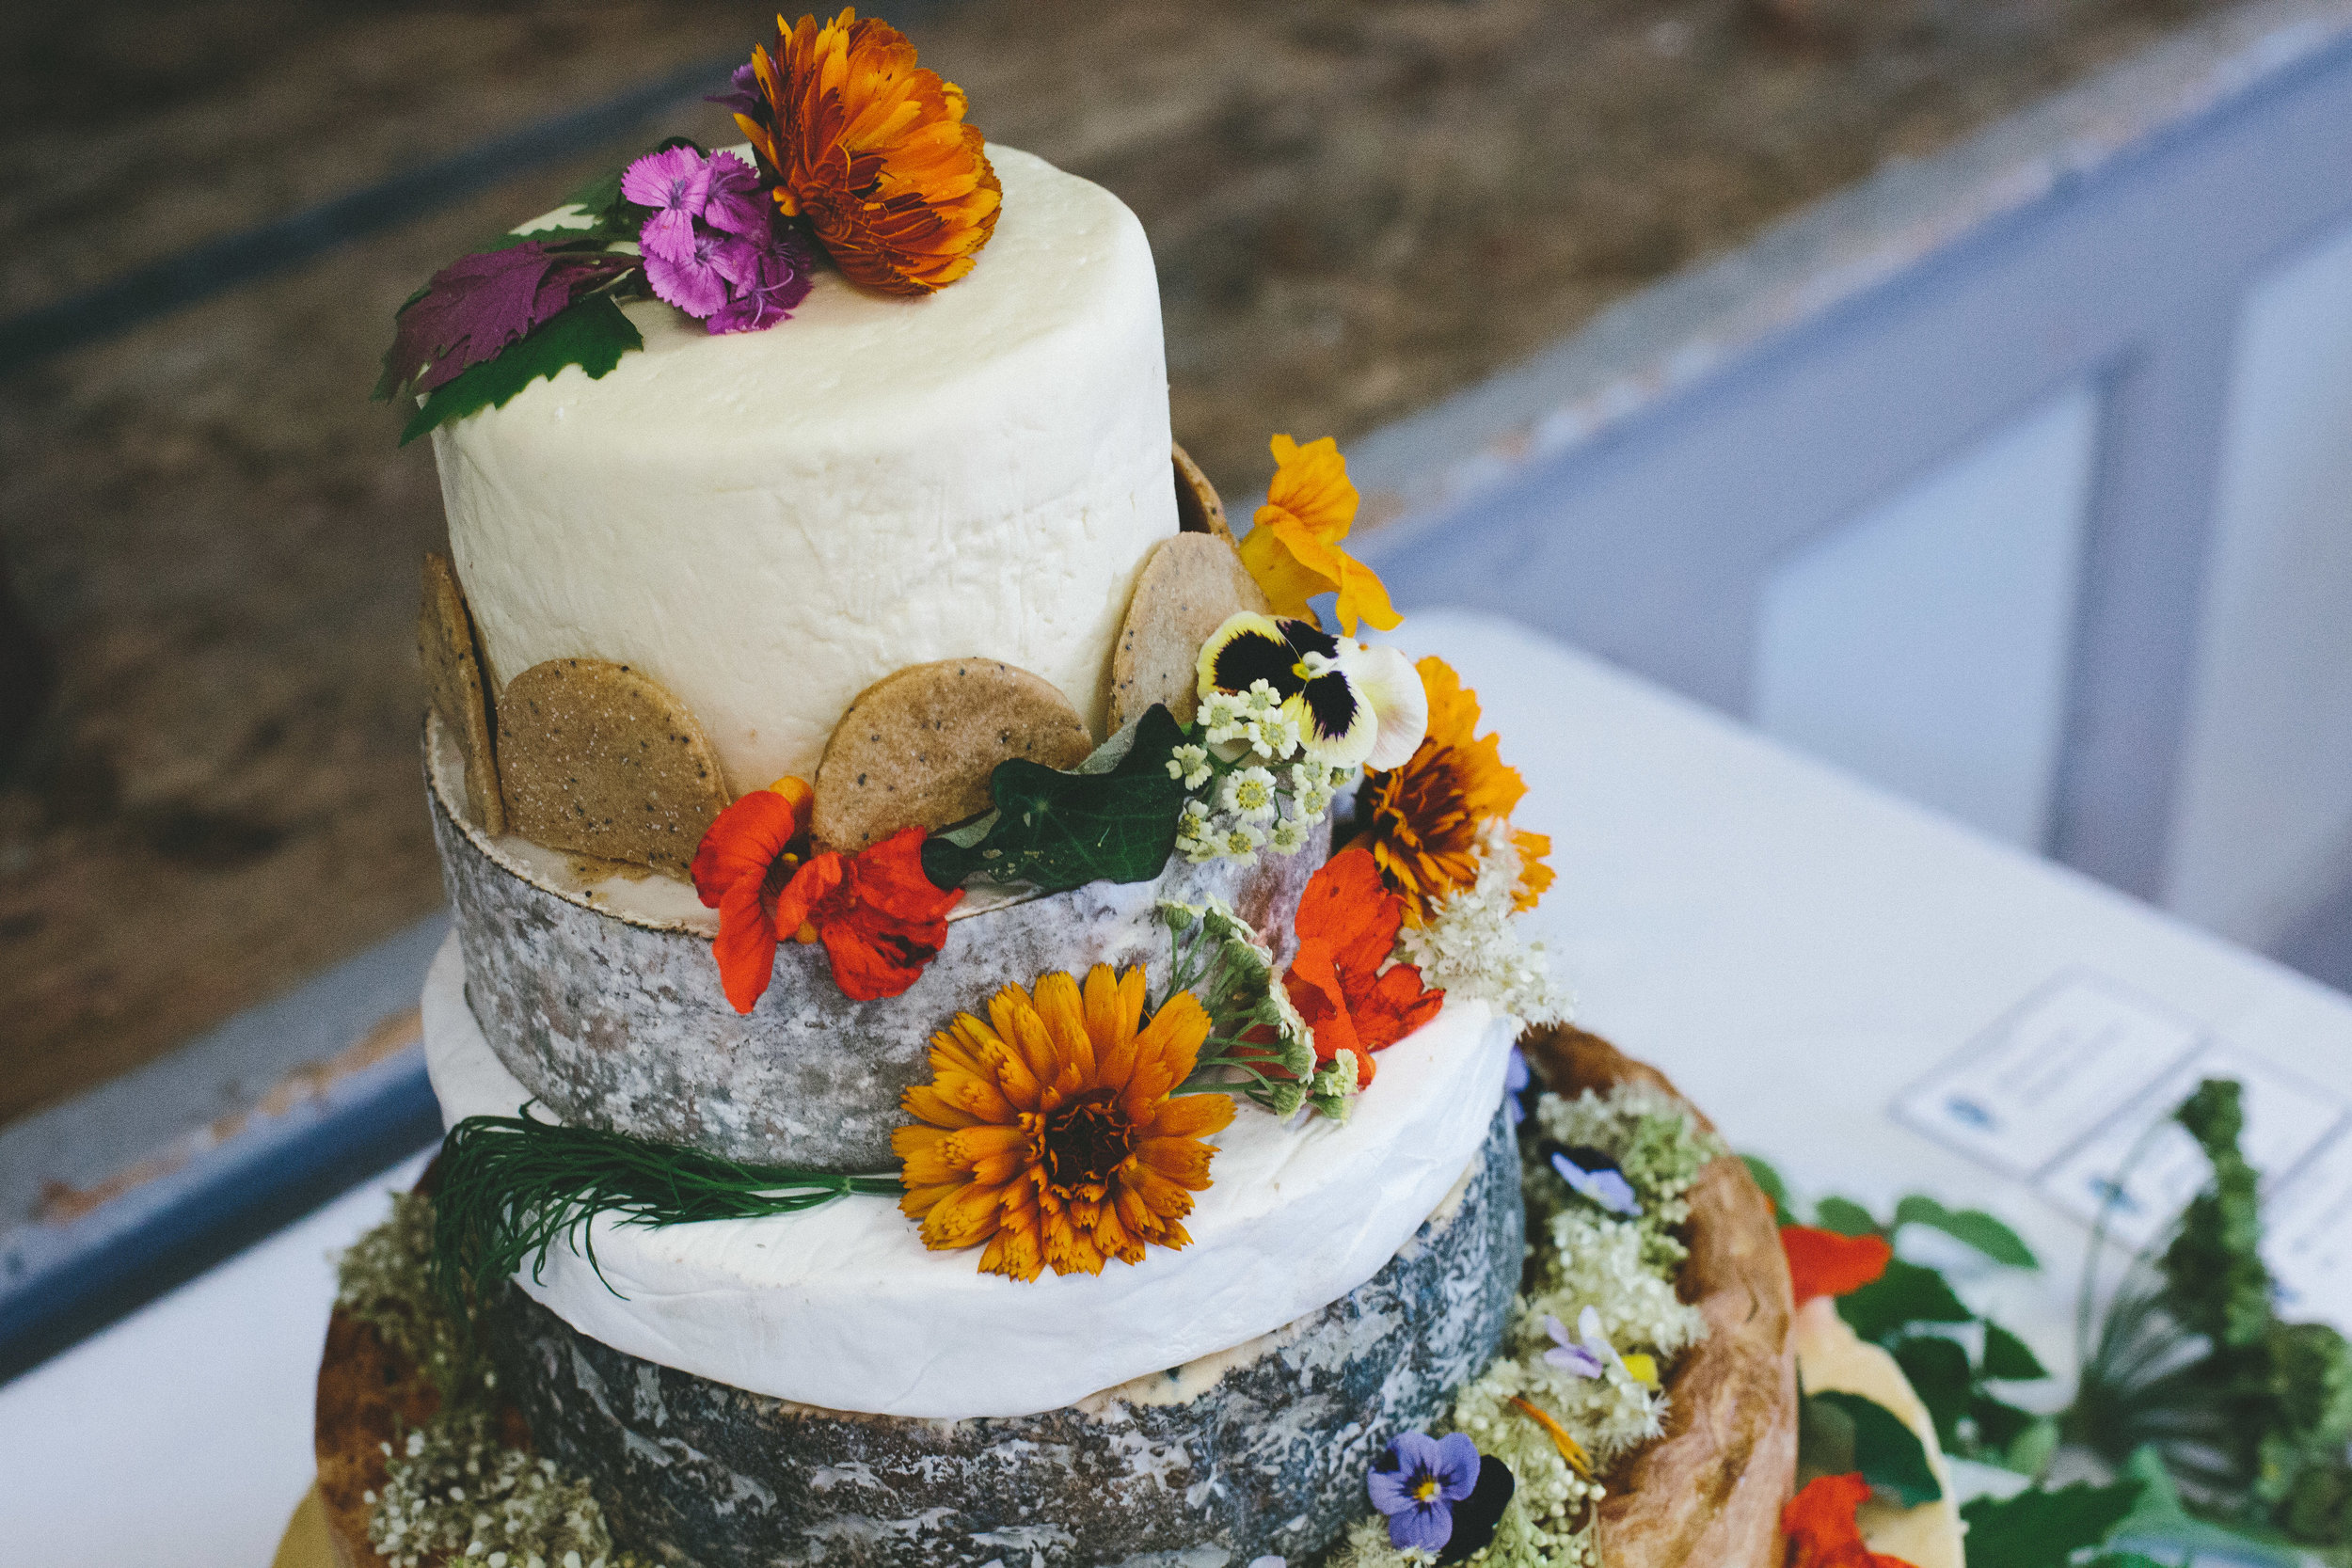 Whole Marigolds decorating this cake of cheese